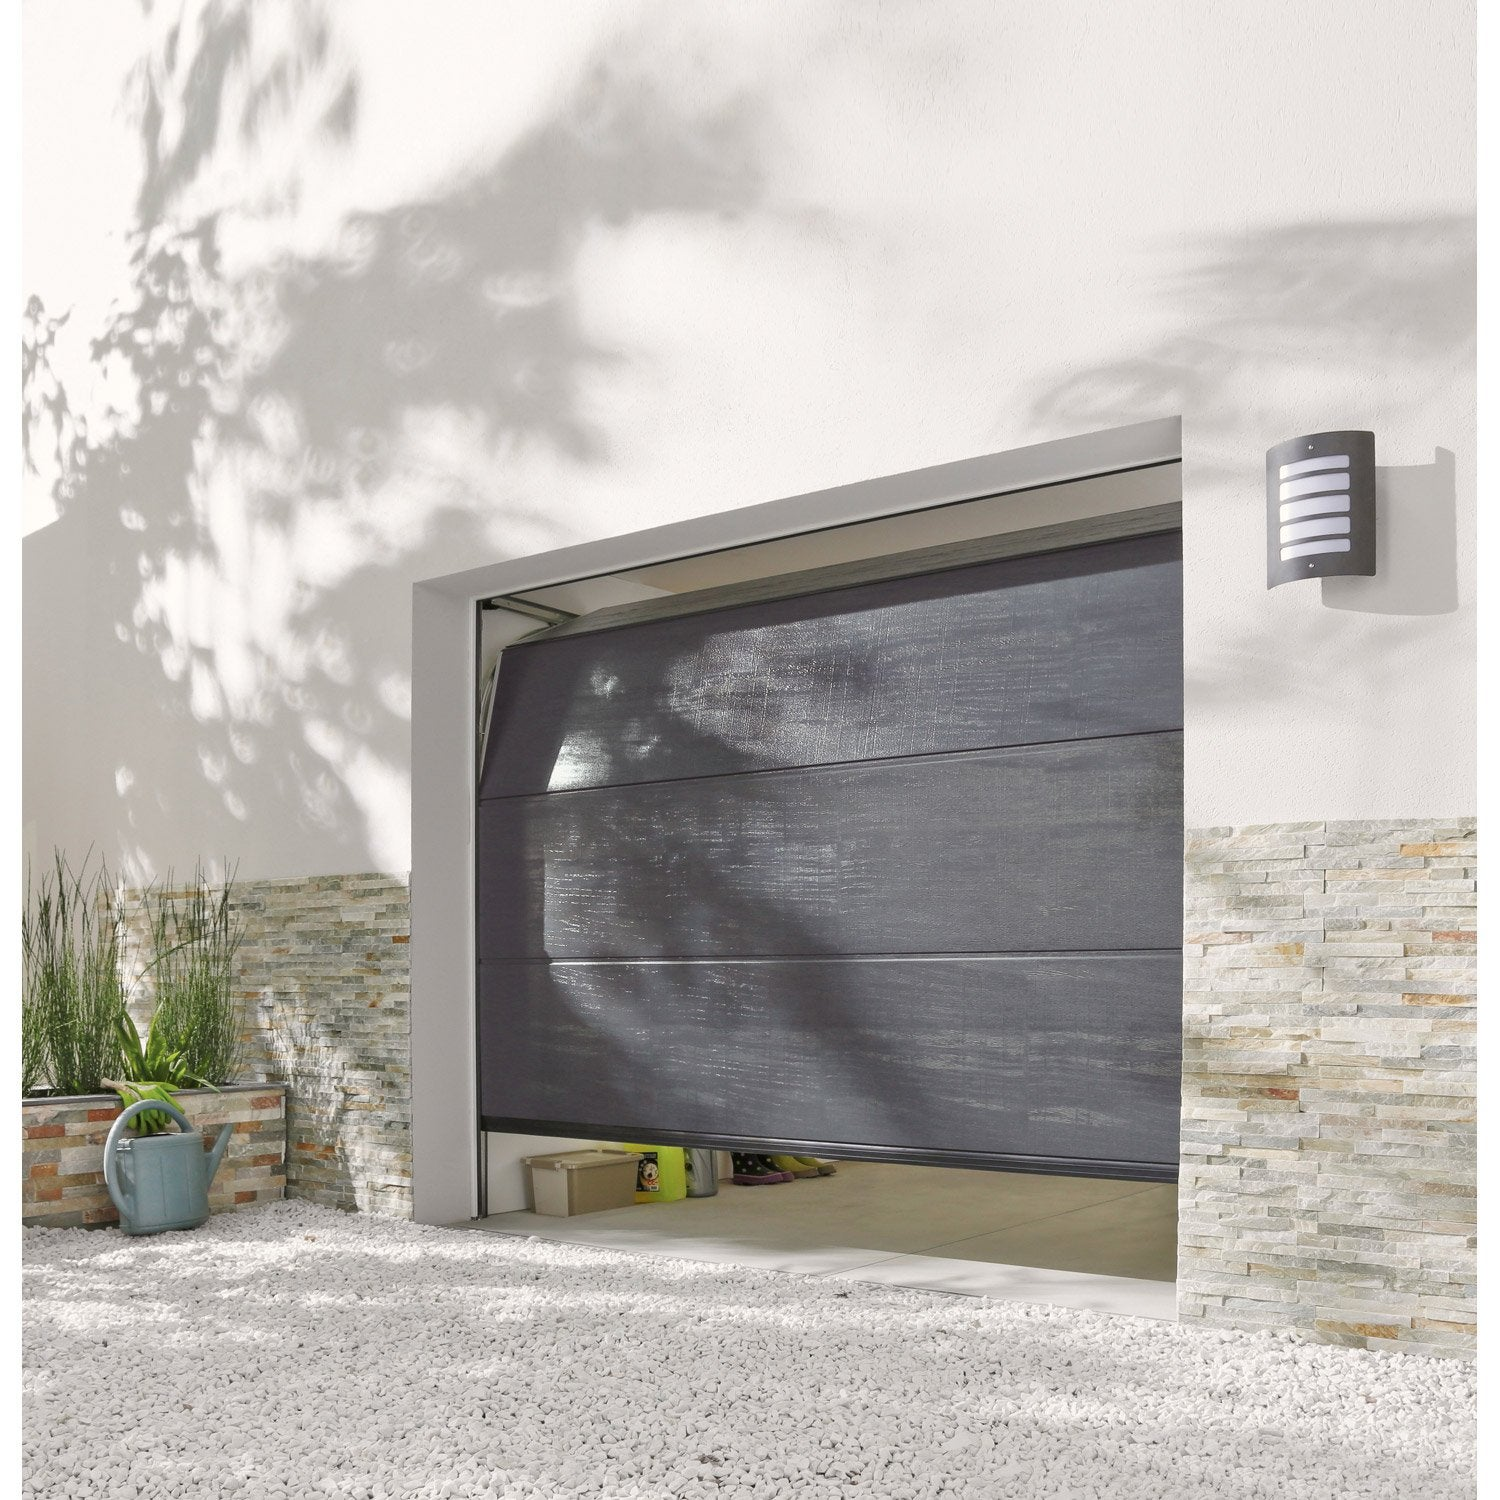 Porte de garage sectionnelle ags2 x cm leroy for Porte de garage sectionnelle 250 x 200